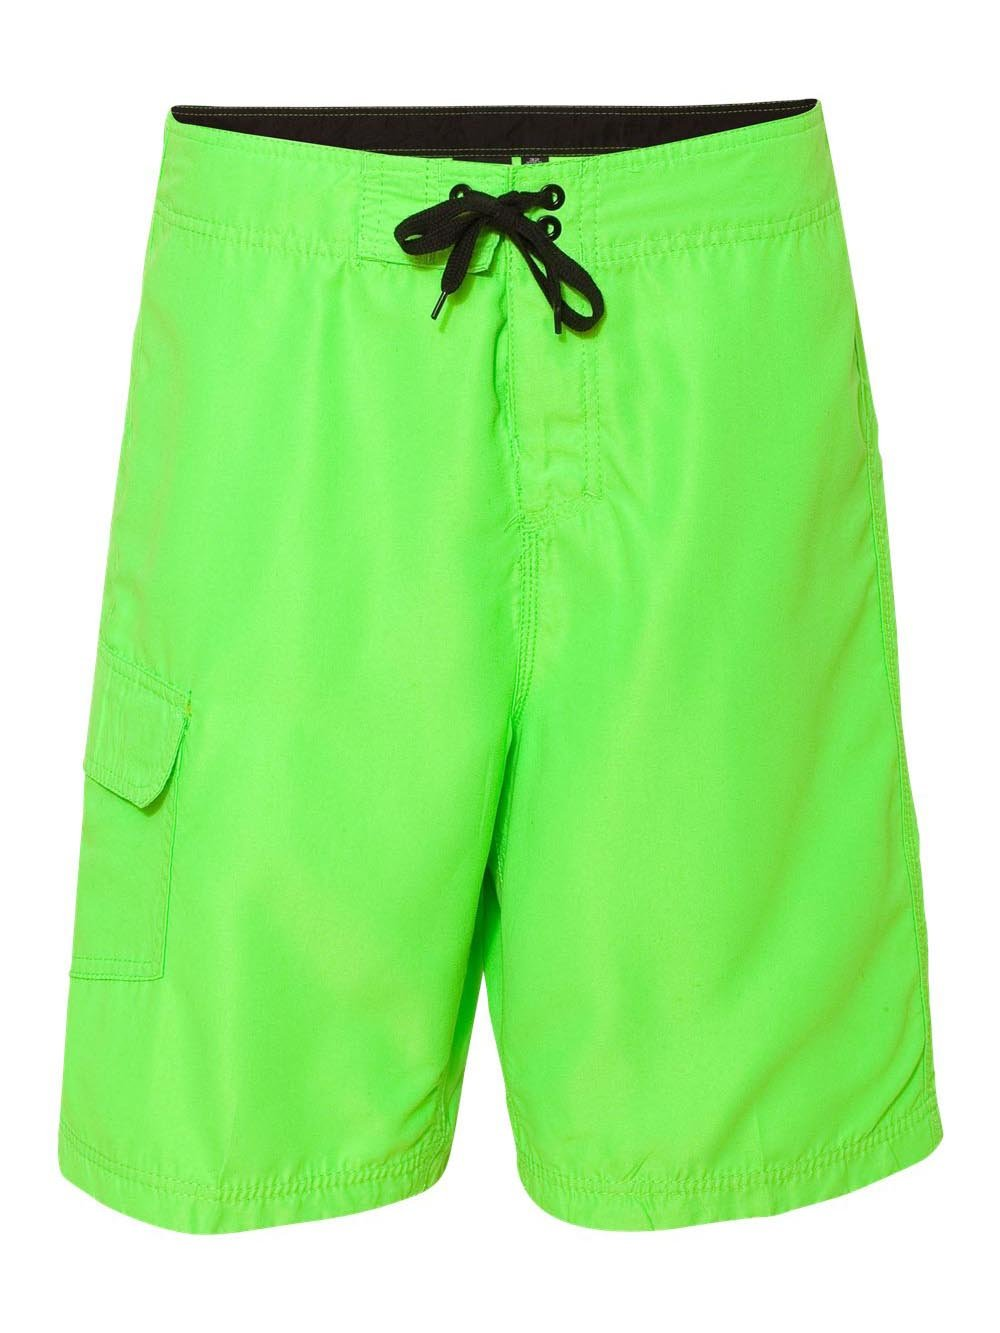 Burnside B9301 Men's Solid Board Shorts Neon Green 40